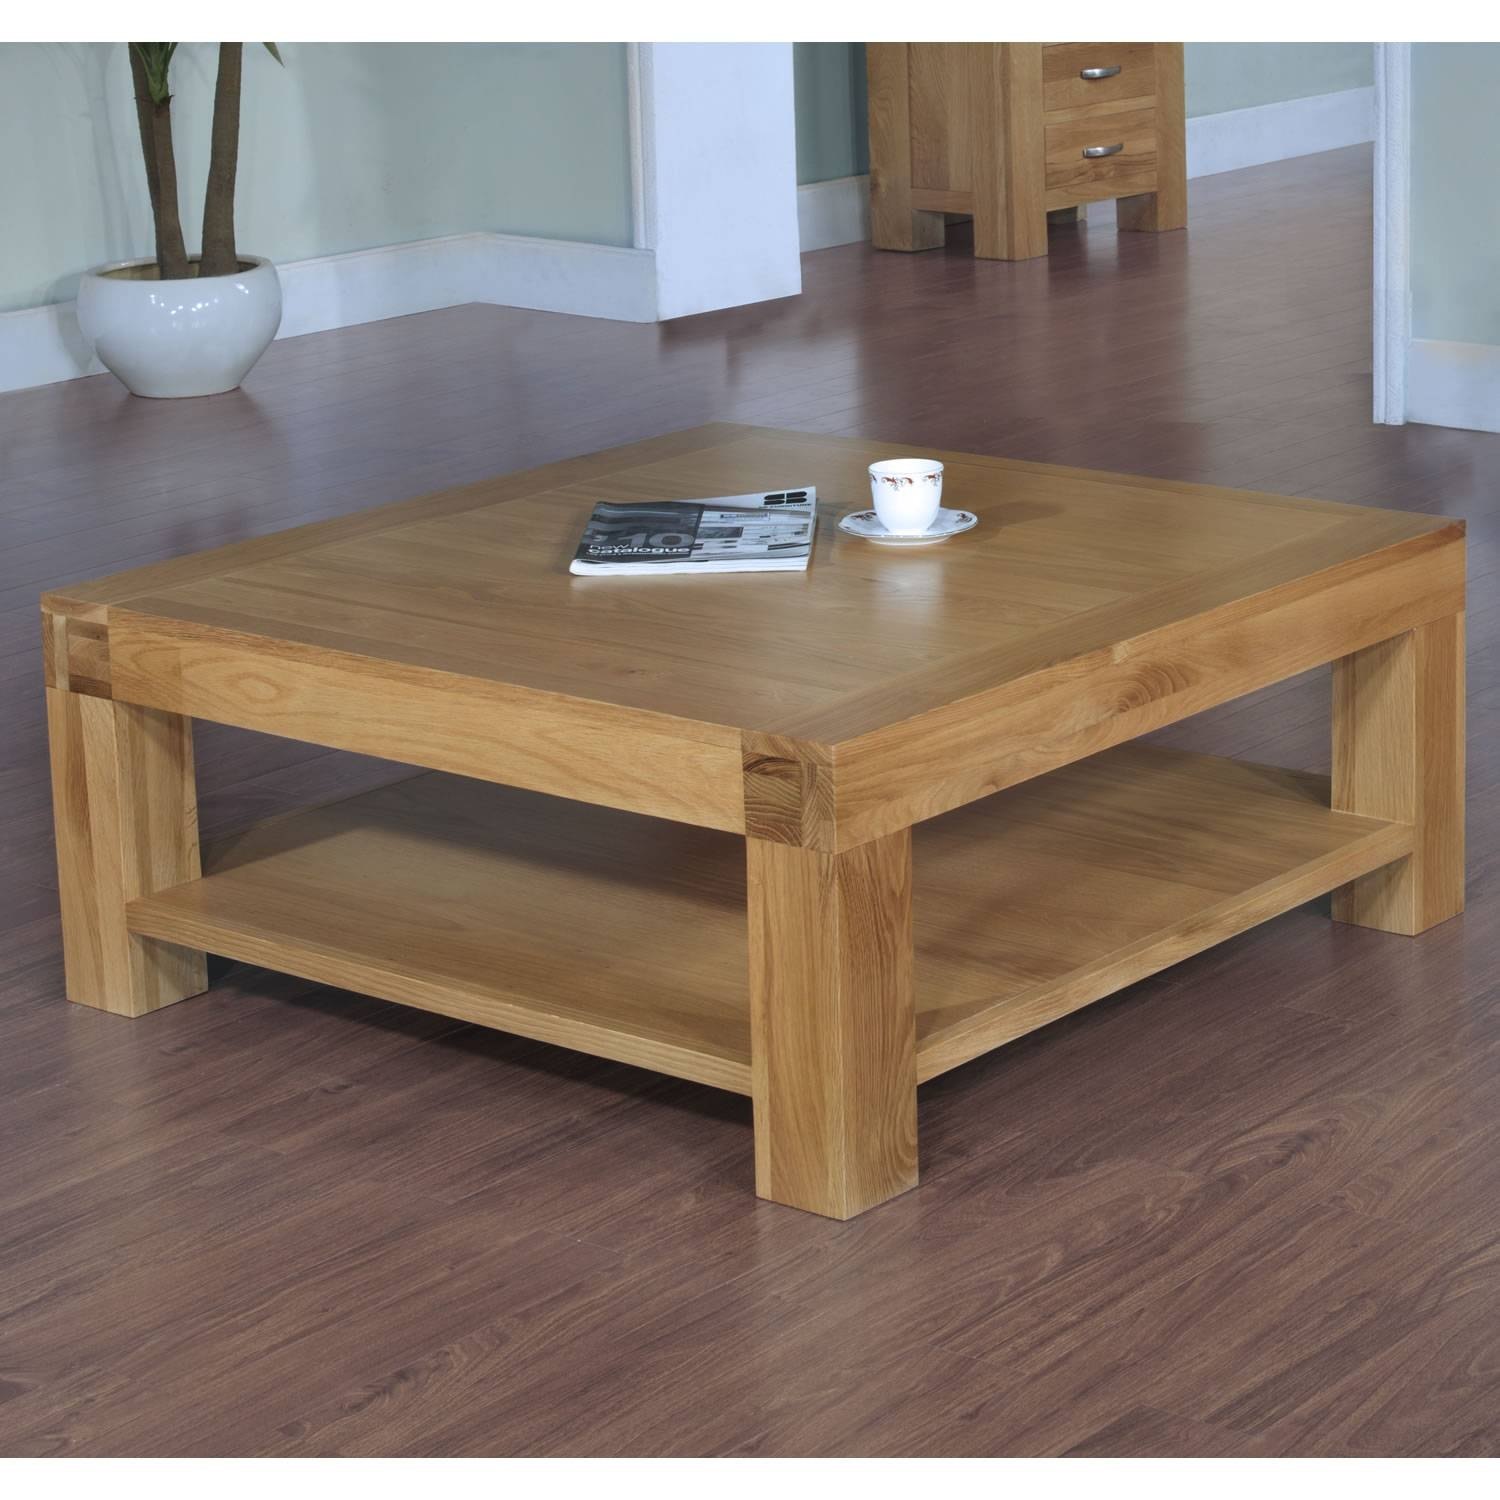 Square Rustic Coffee Table : Rustic Coffee Tables As One Of The regarding Rustic Wooden Coffee Tables (Image 13 of 15)